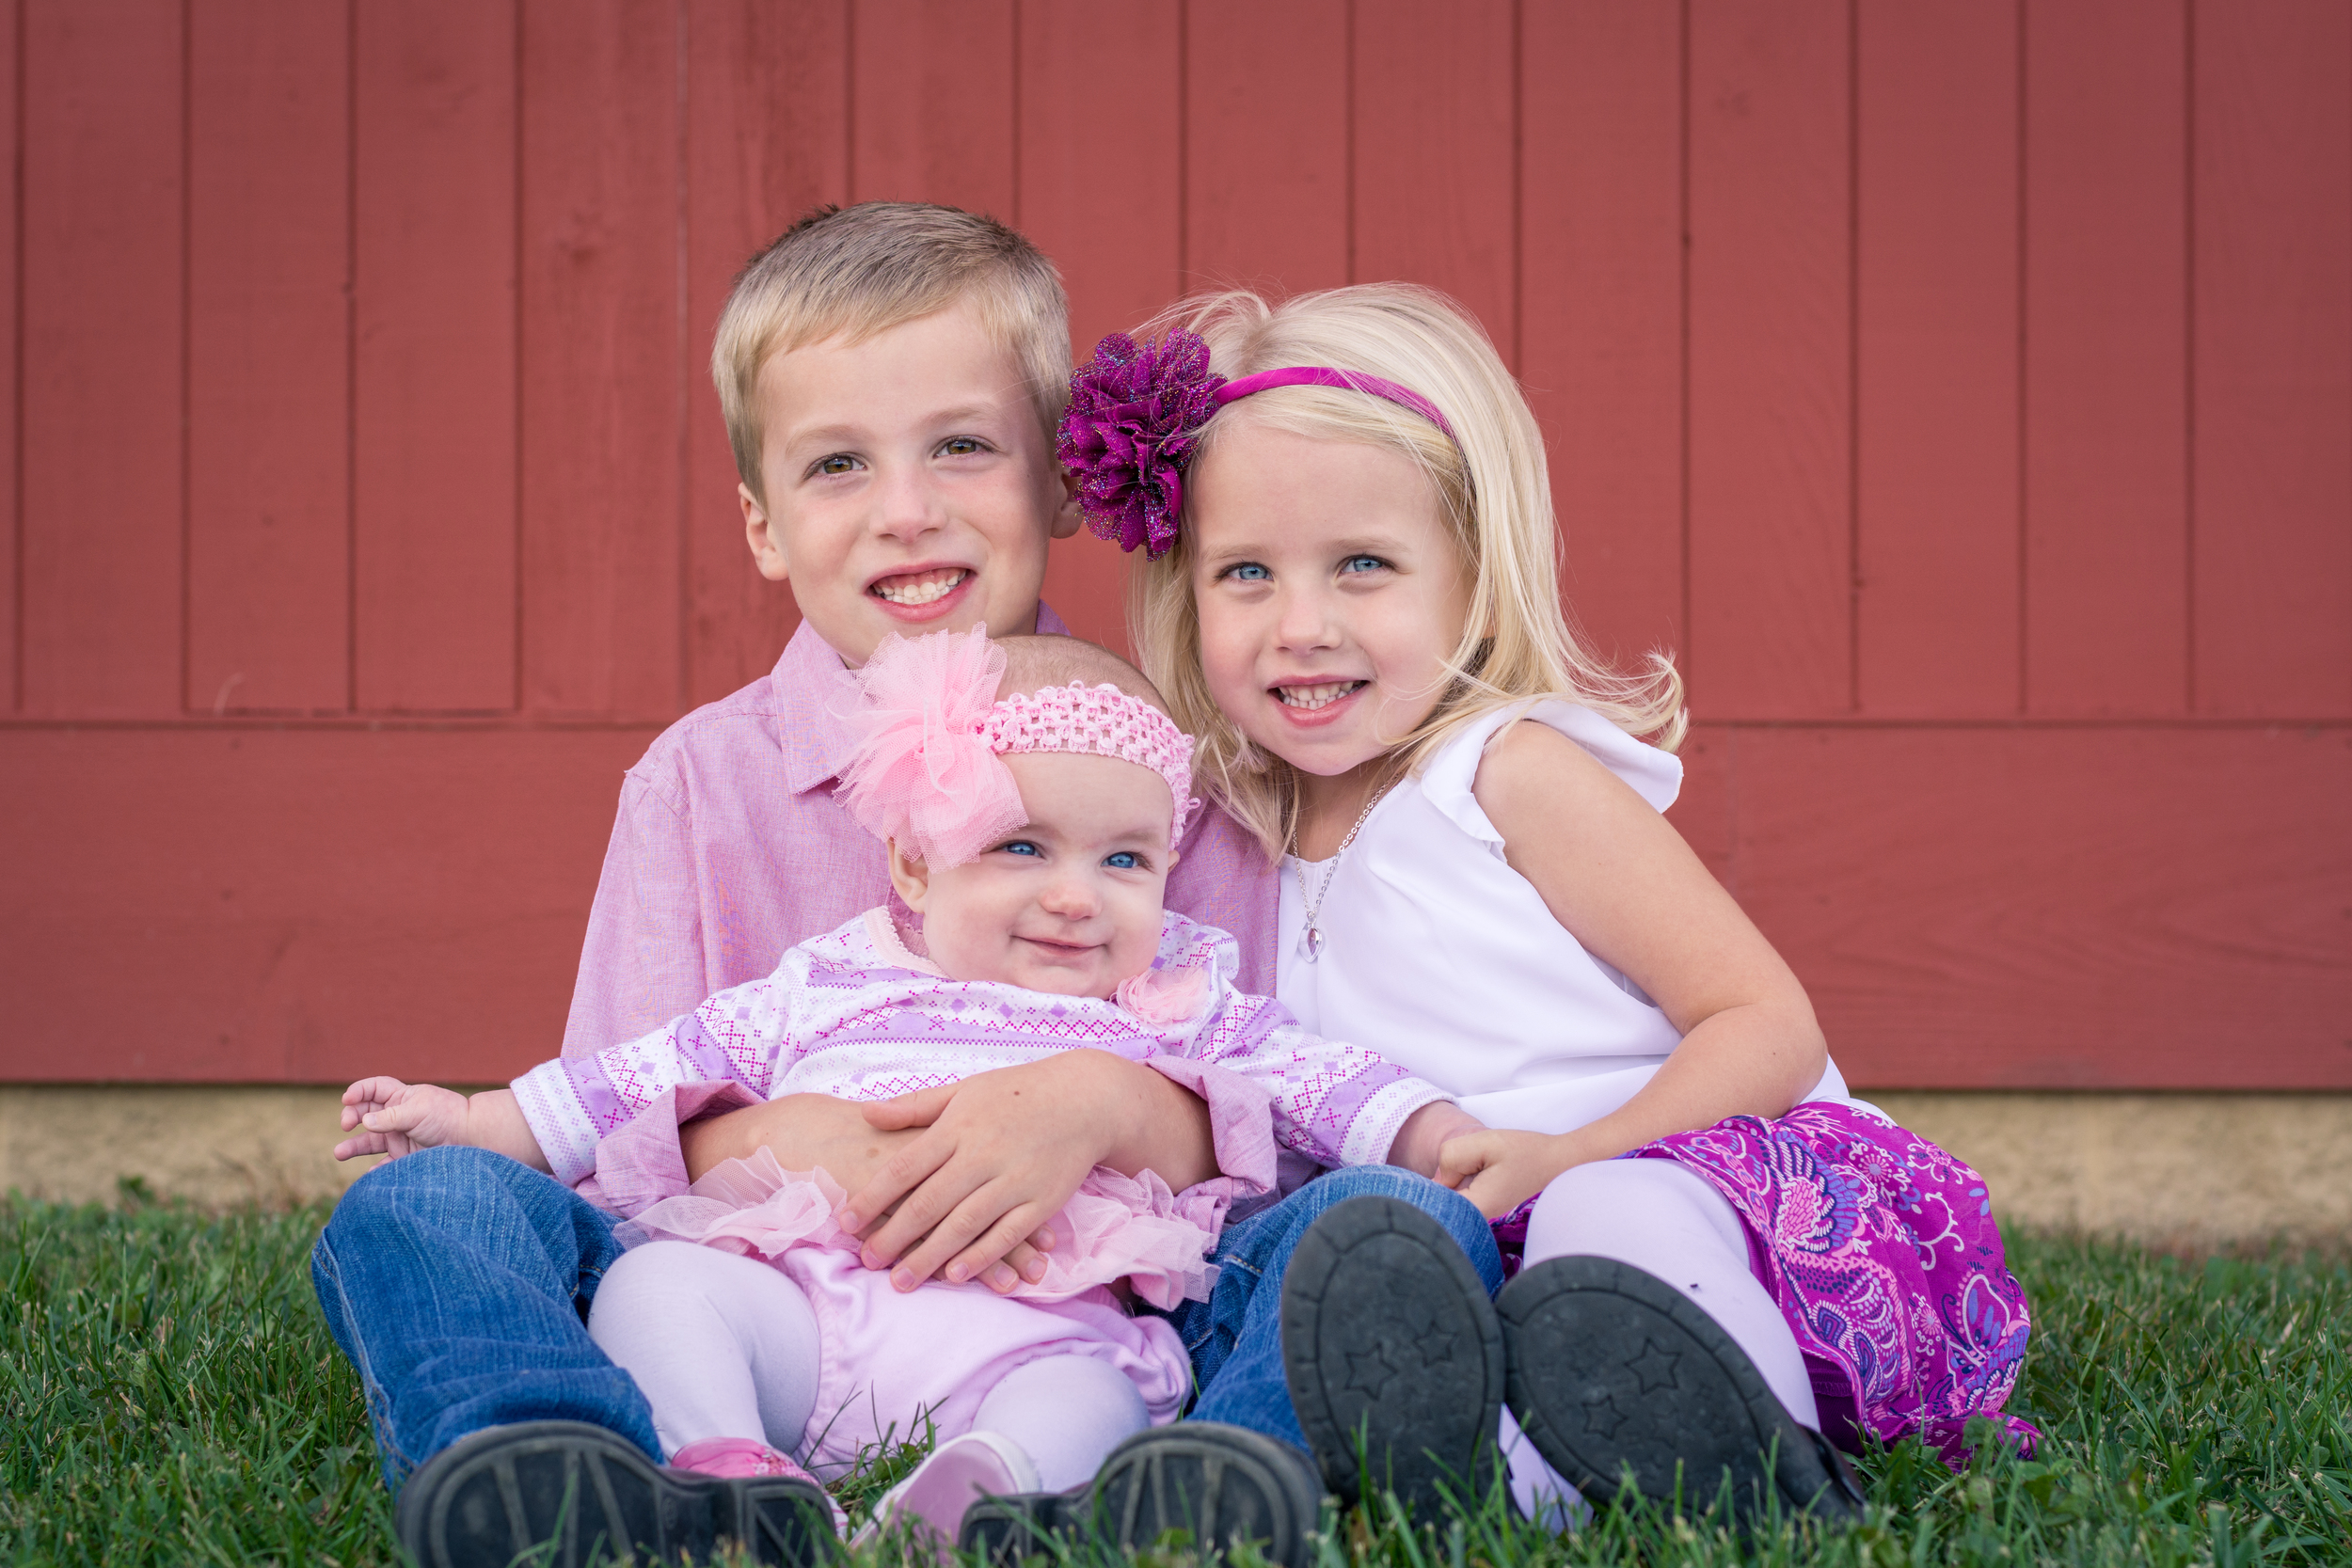 Life_by_pictures_photography_family_children_blog_4.jpg